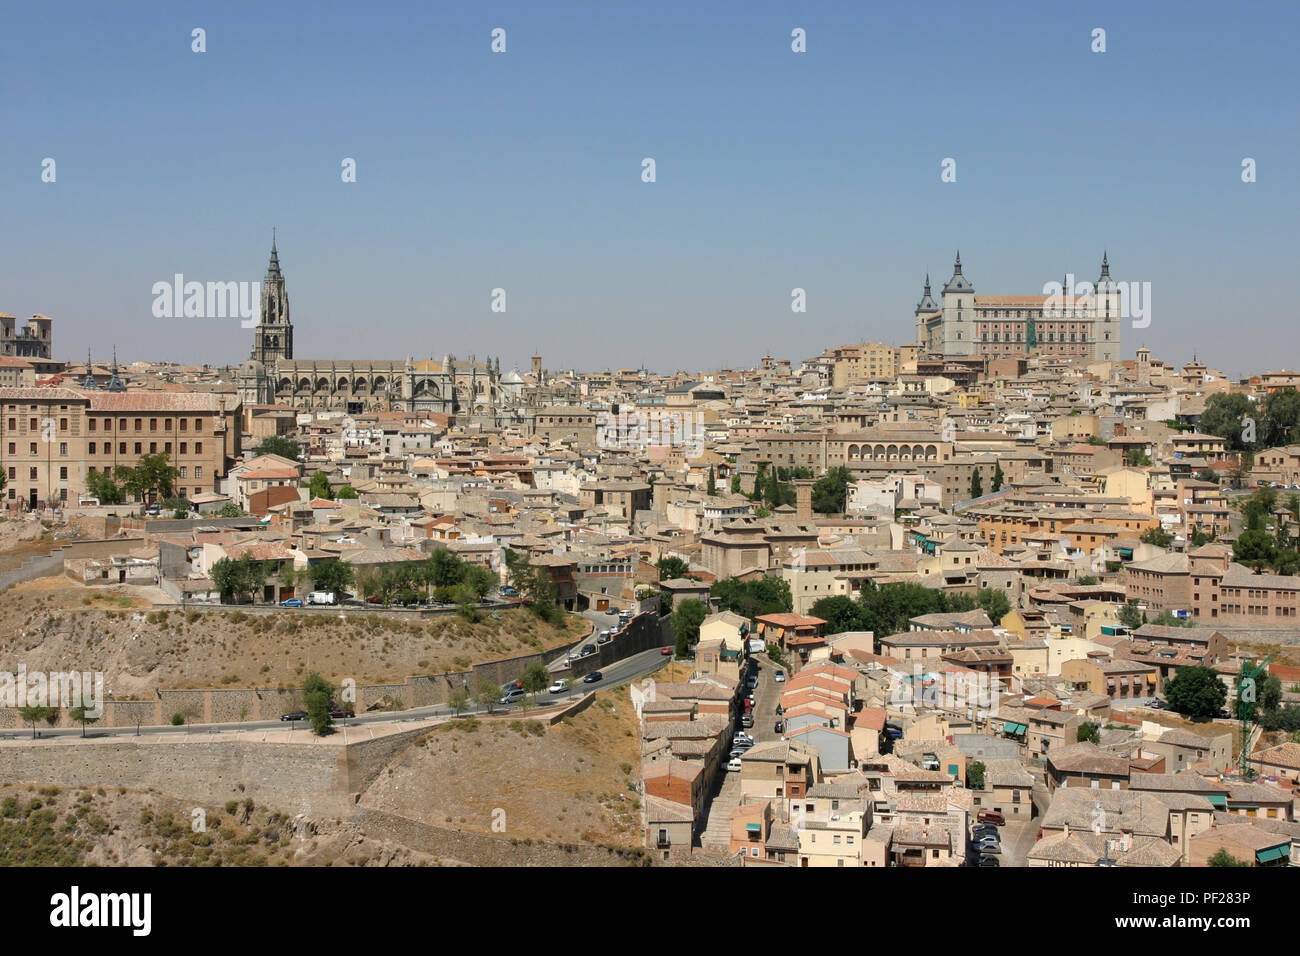 View of the City of Toldeo, Spain. - Stock Image